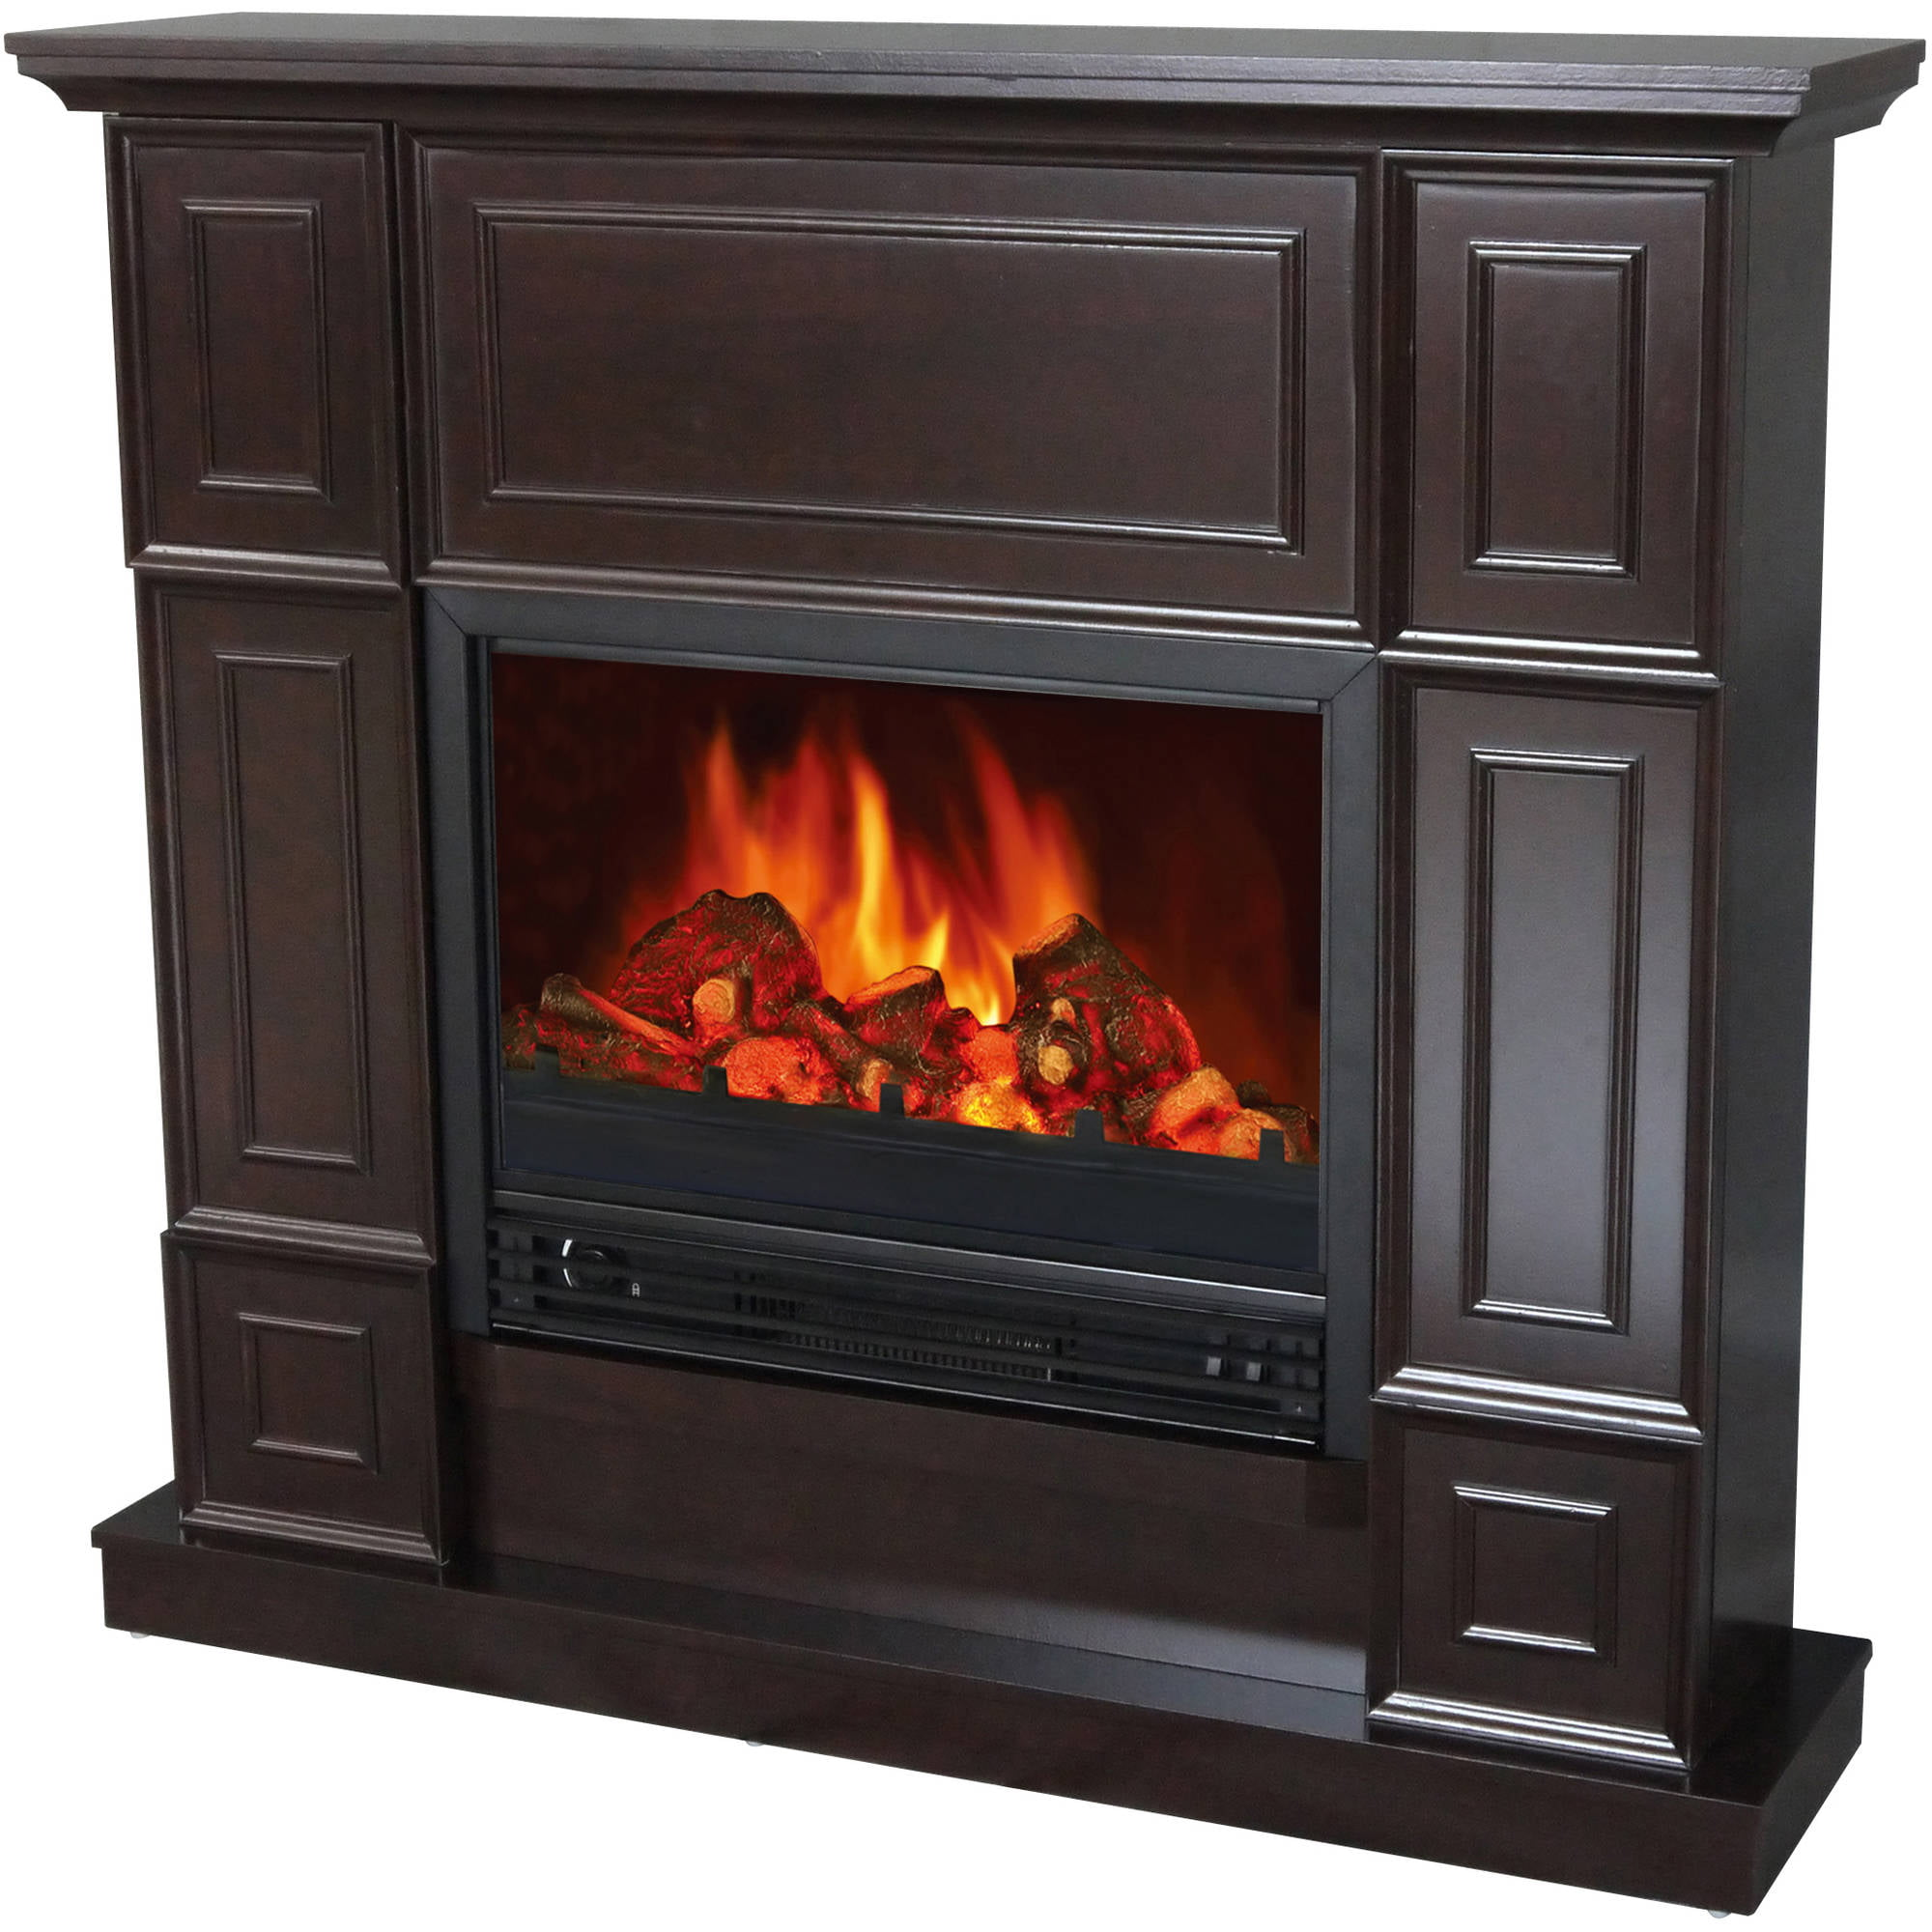 electric awesome insert of heater fireplace fireplacetvstand curved fresh manufacturers inch ventless club